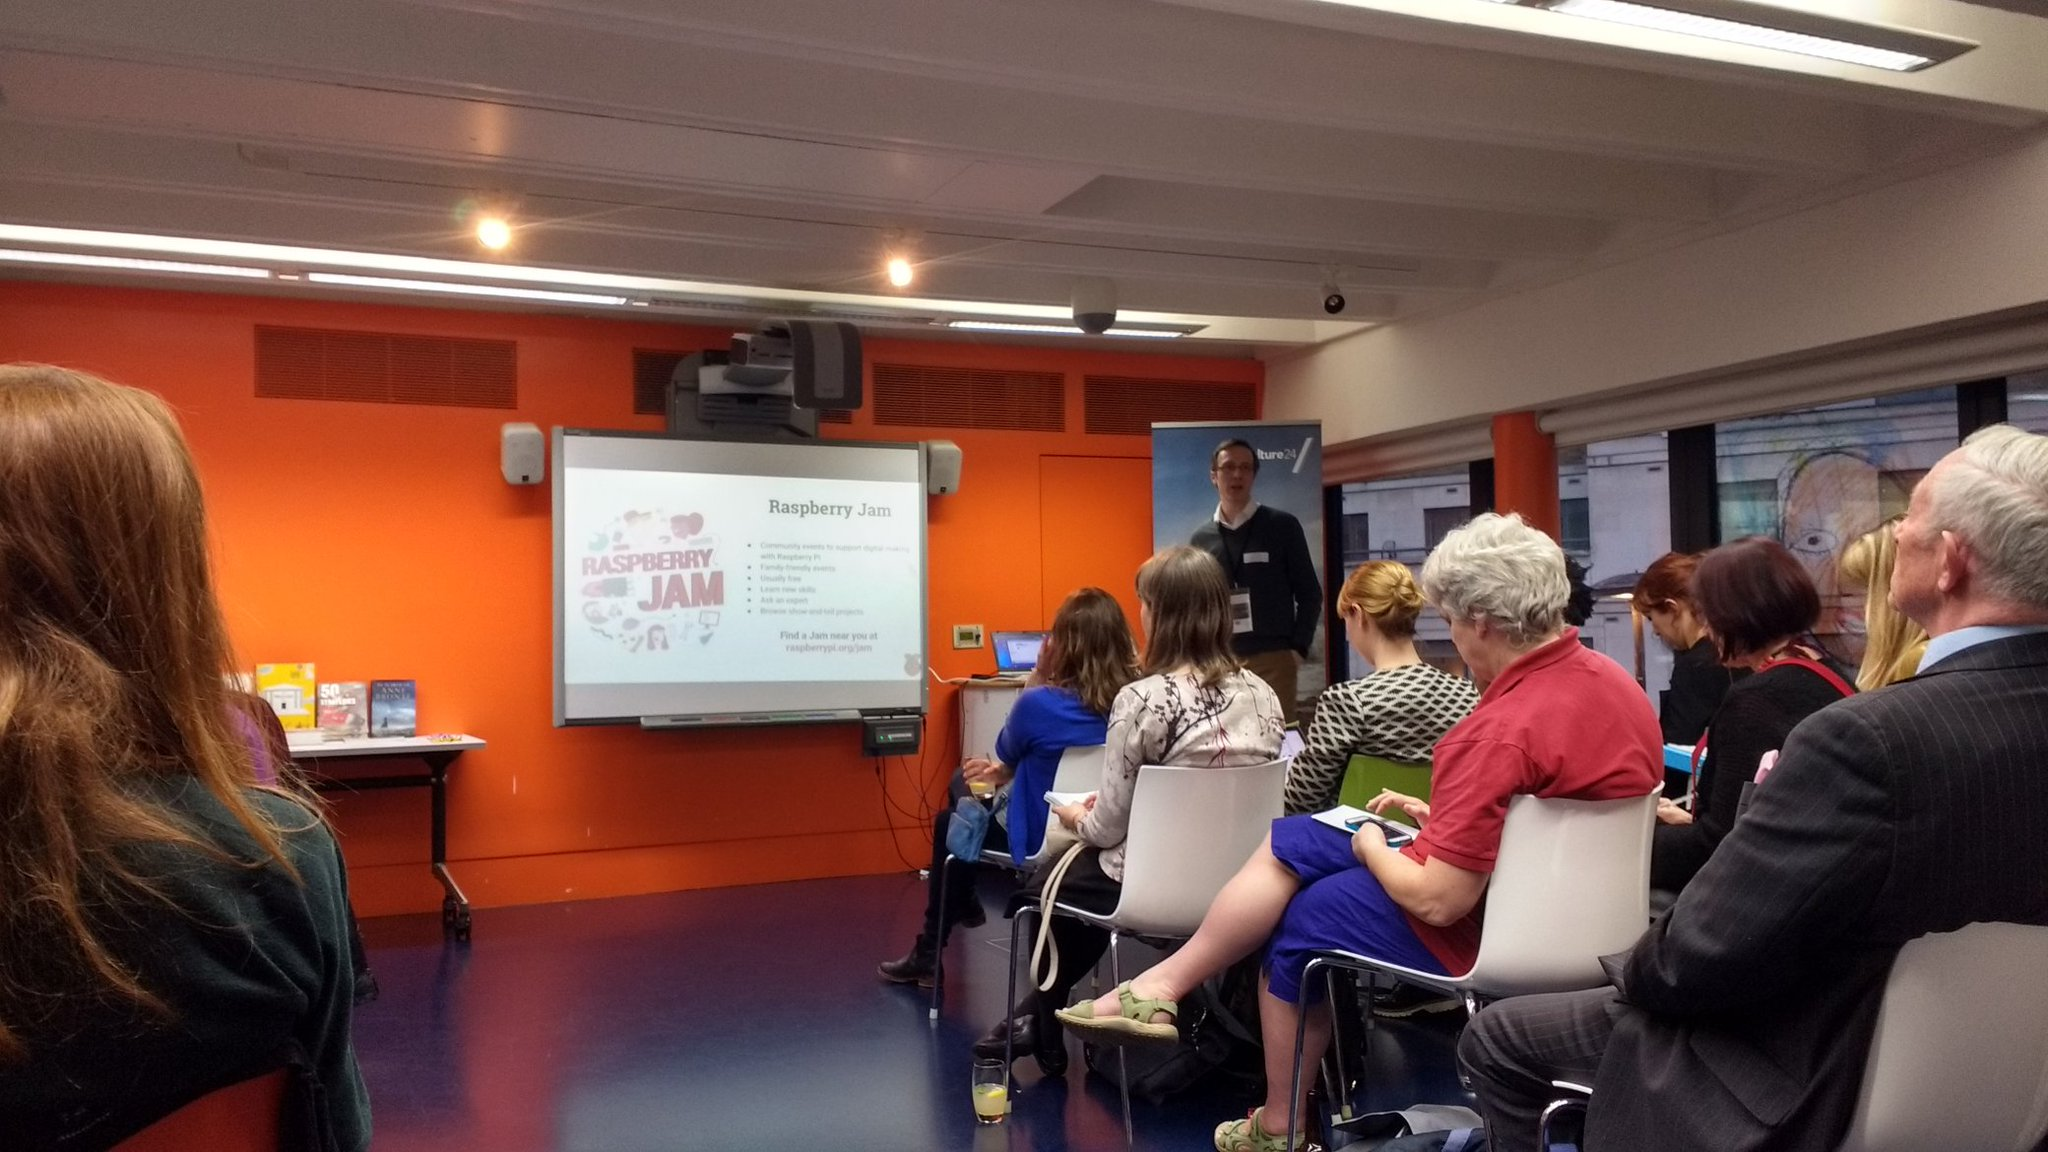 #tmculture24 @oliverquinlan introduces #raspberryjam events https://t.co/yifw5R7hSt